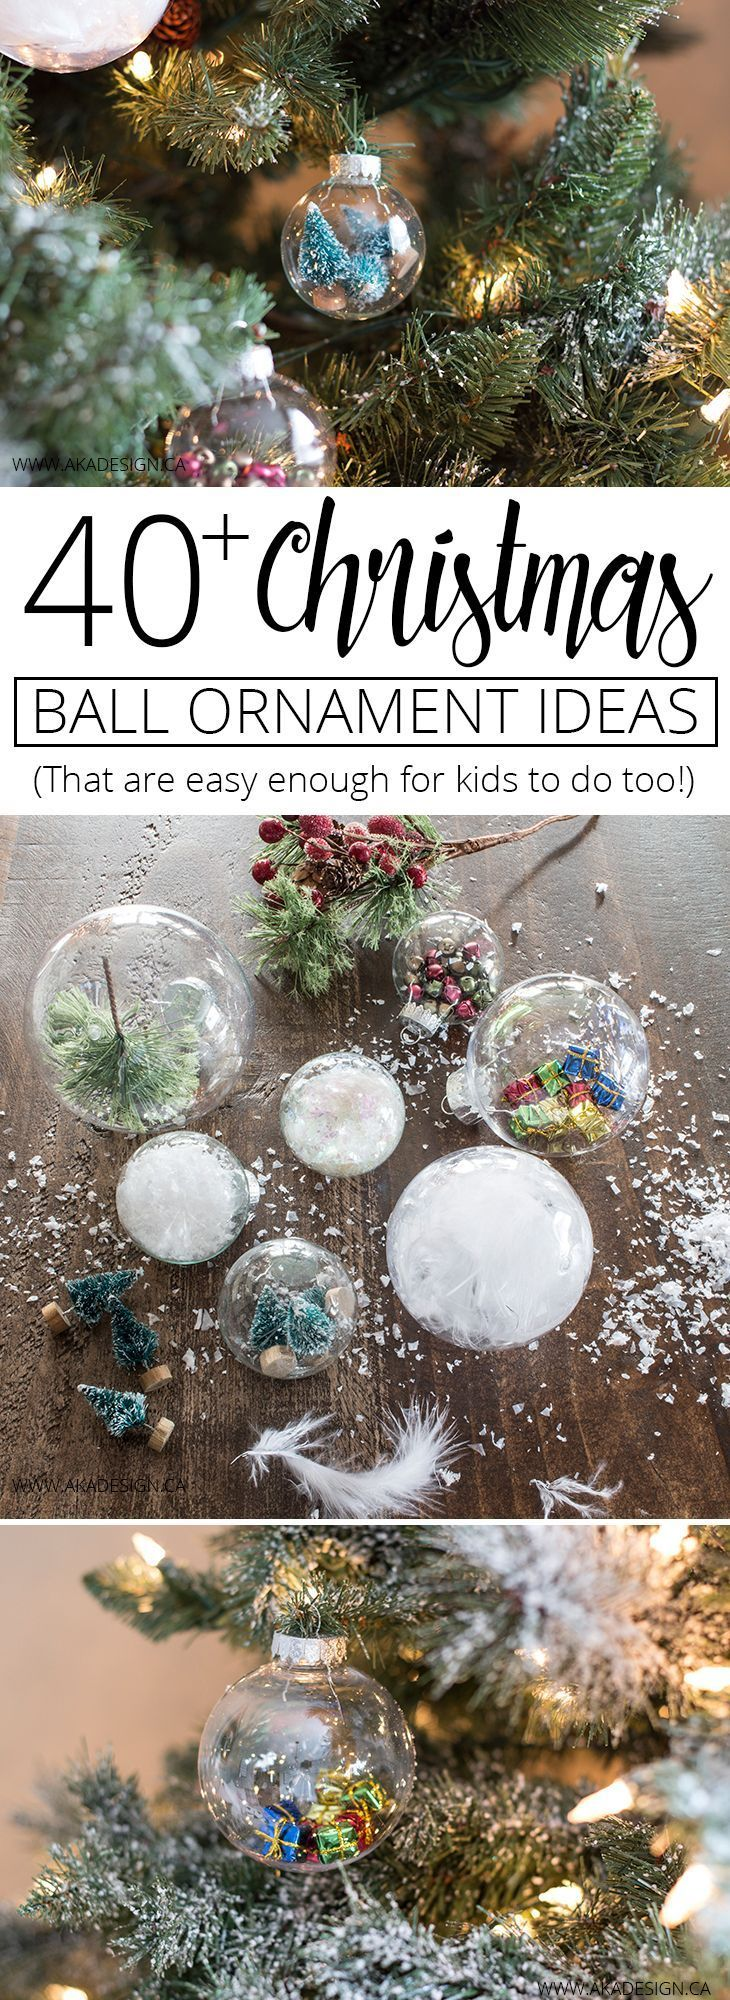 Holiday decorating ideas - Create memories making your own ornaments with over 40 easy to make Christmas Ball Ornament Ideas! | AKA Design